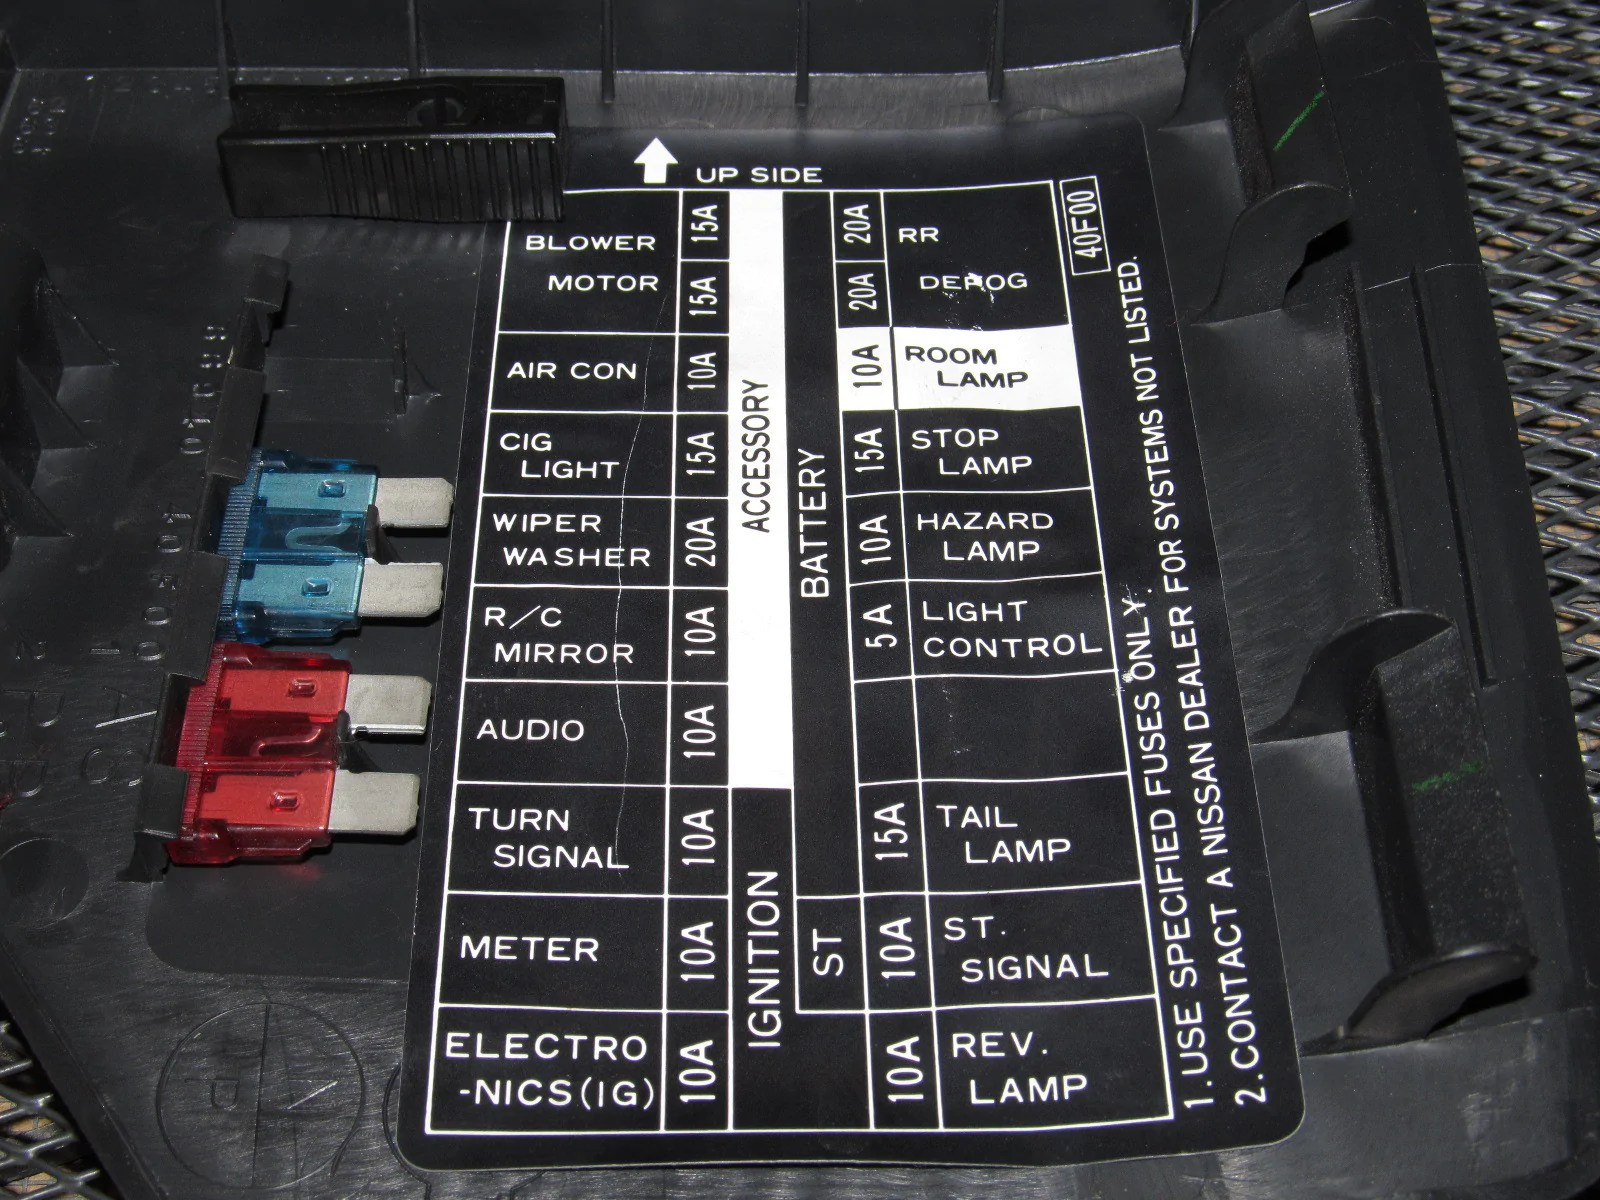 1995 240sx fuse box plugs wiring diagram on the net cool nissan 240sx 91 nissan 240sx electrical fuses box #4